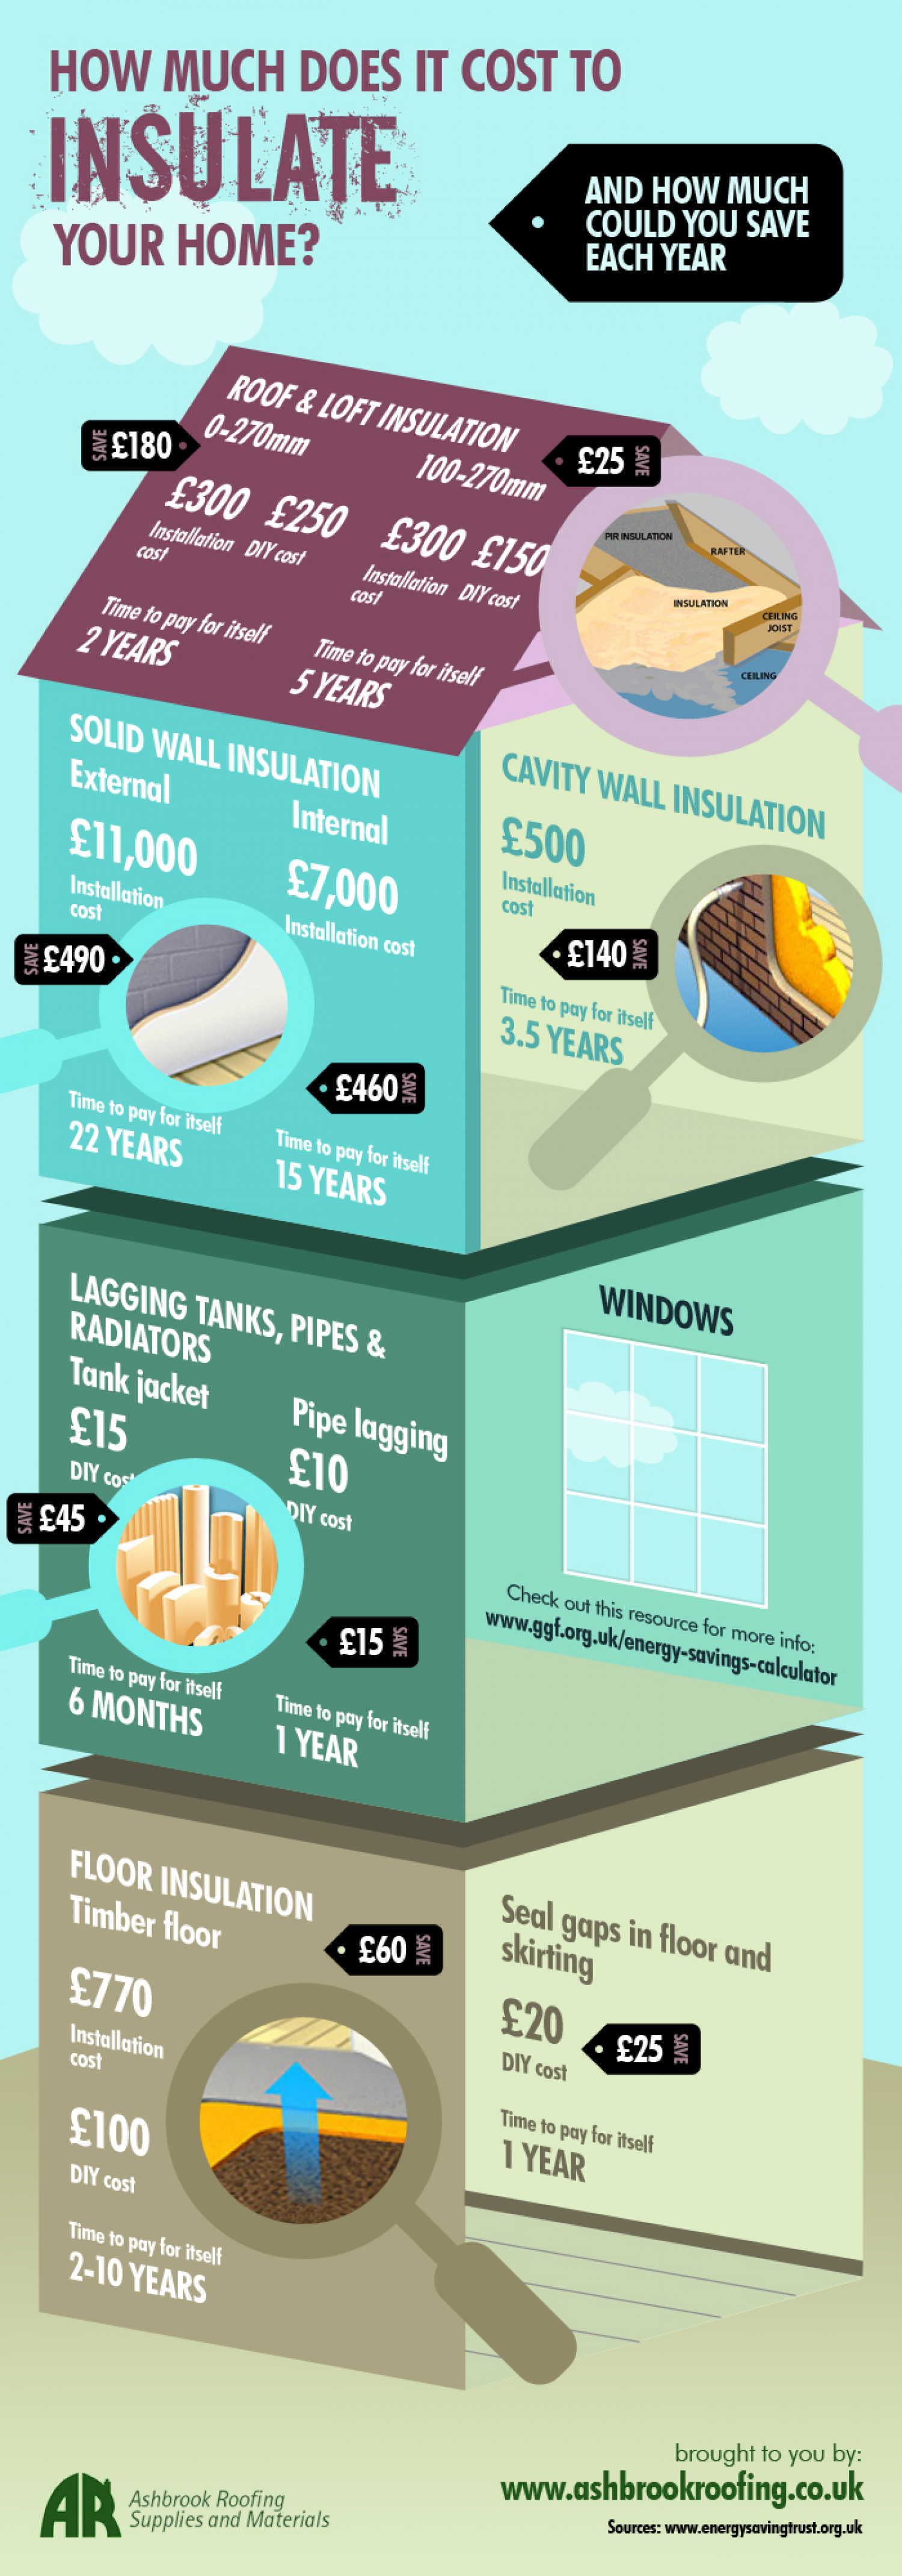 How Much Does It Cost To Insulate Your Home Infographic